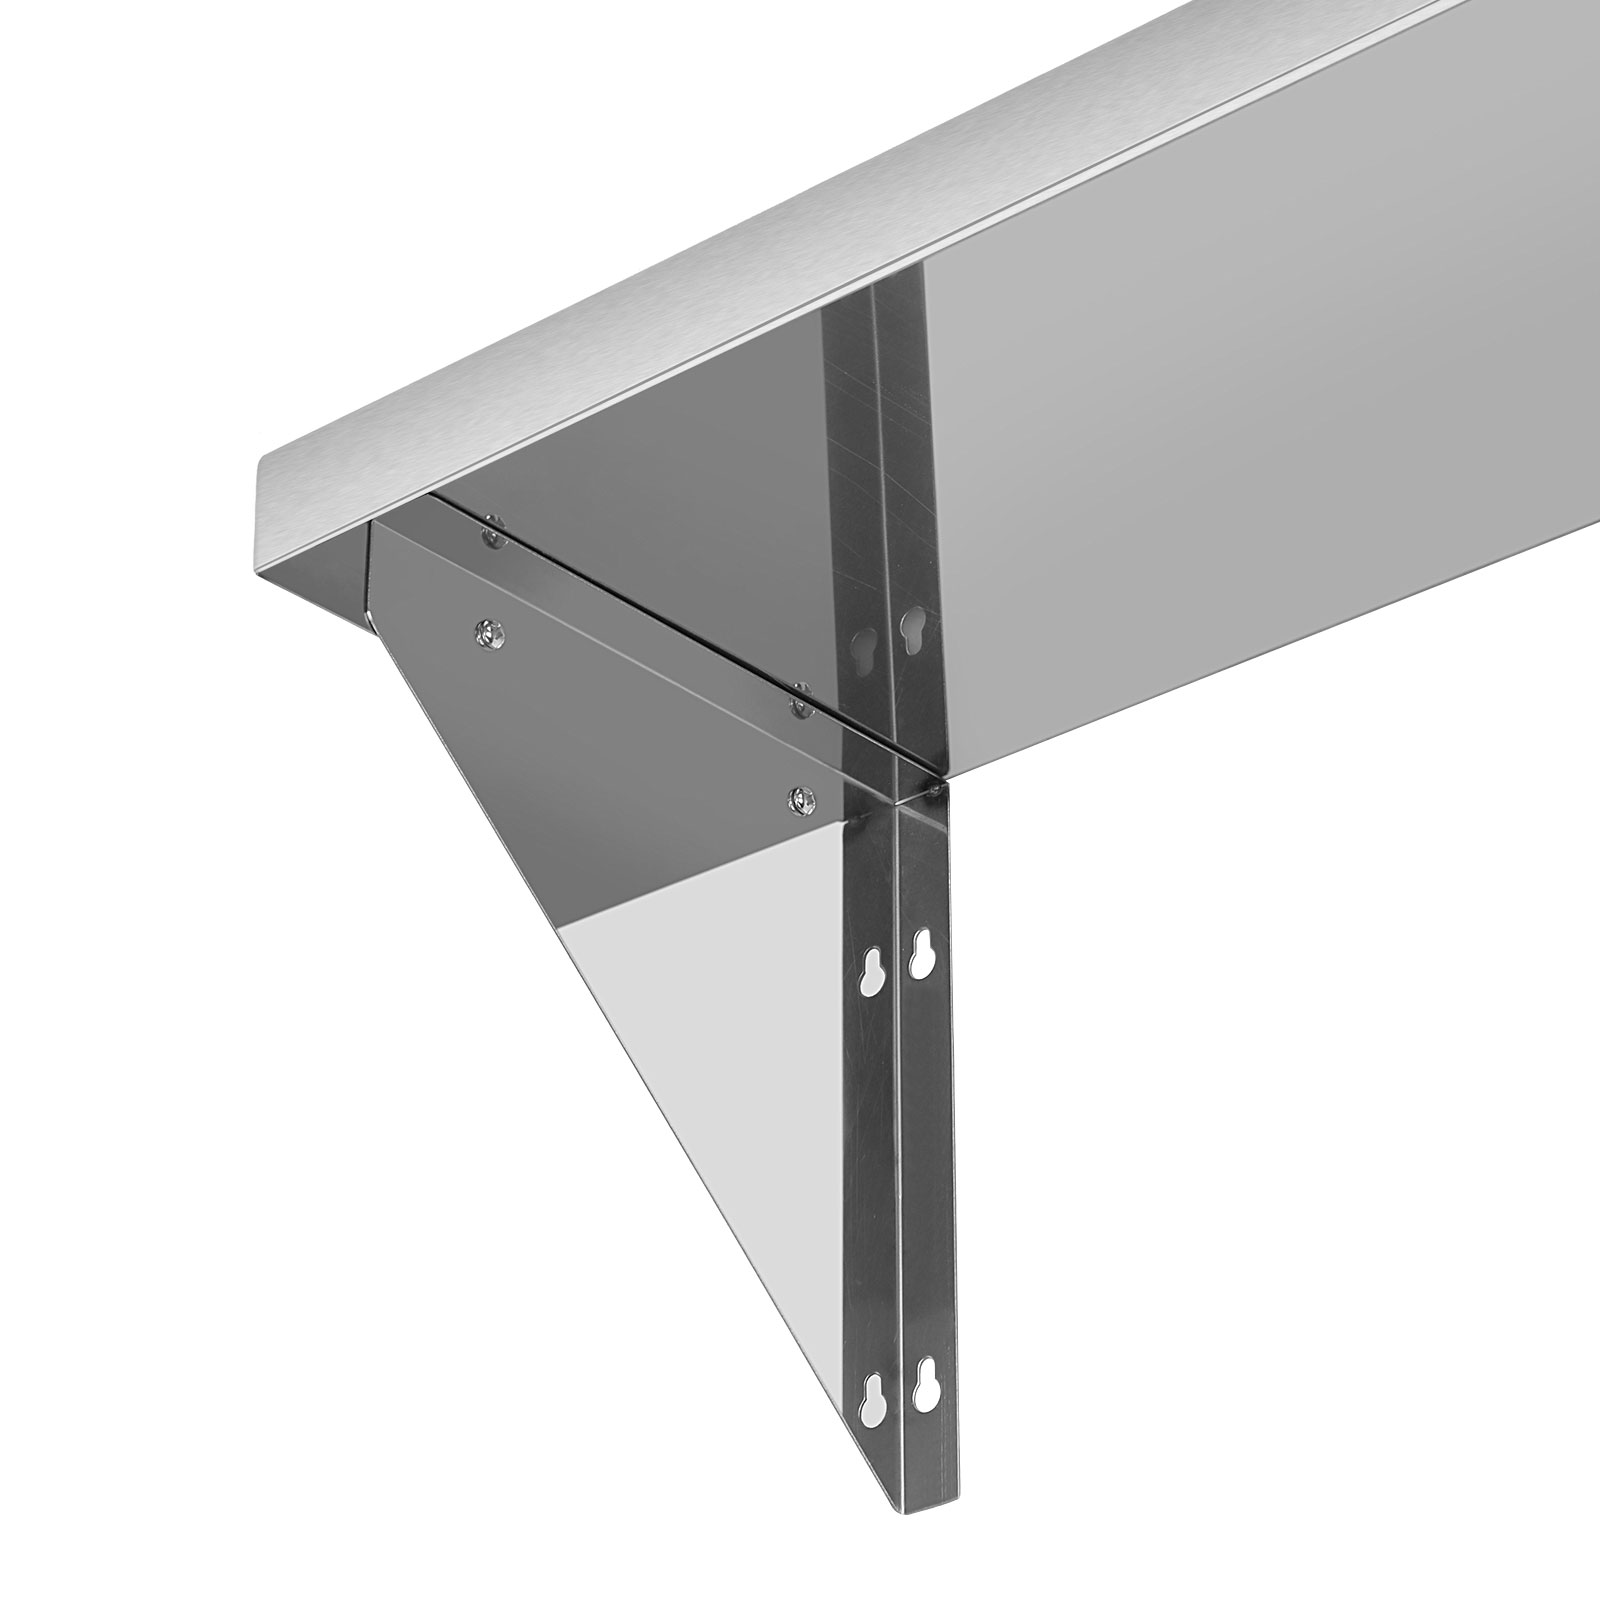 New 900x300mm Stainless Steel Wall Shelf Brackets Storage Rack Kitchen Catering Ebay